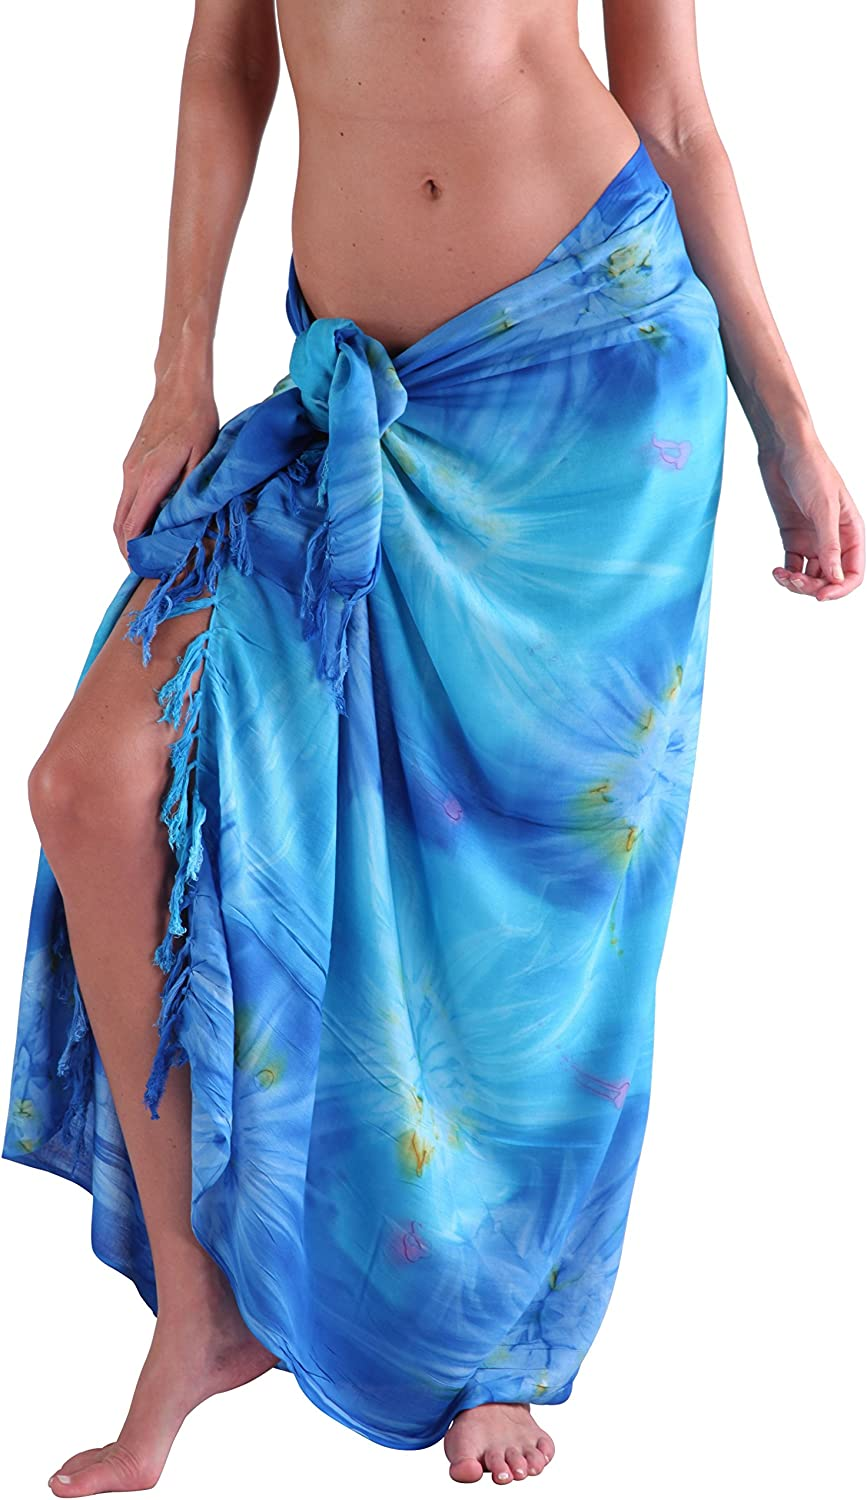 Ingear Beach Long Batik Sarong Womens Swimsuit Wrap Cover Up Pareo With Coconut Shell Included Blue At Amazon Women S Clothing Store